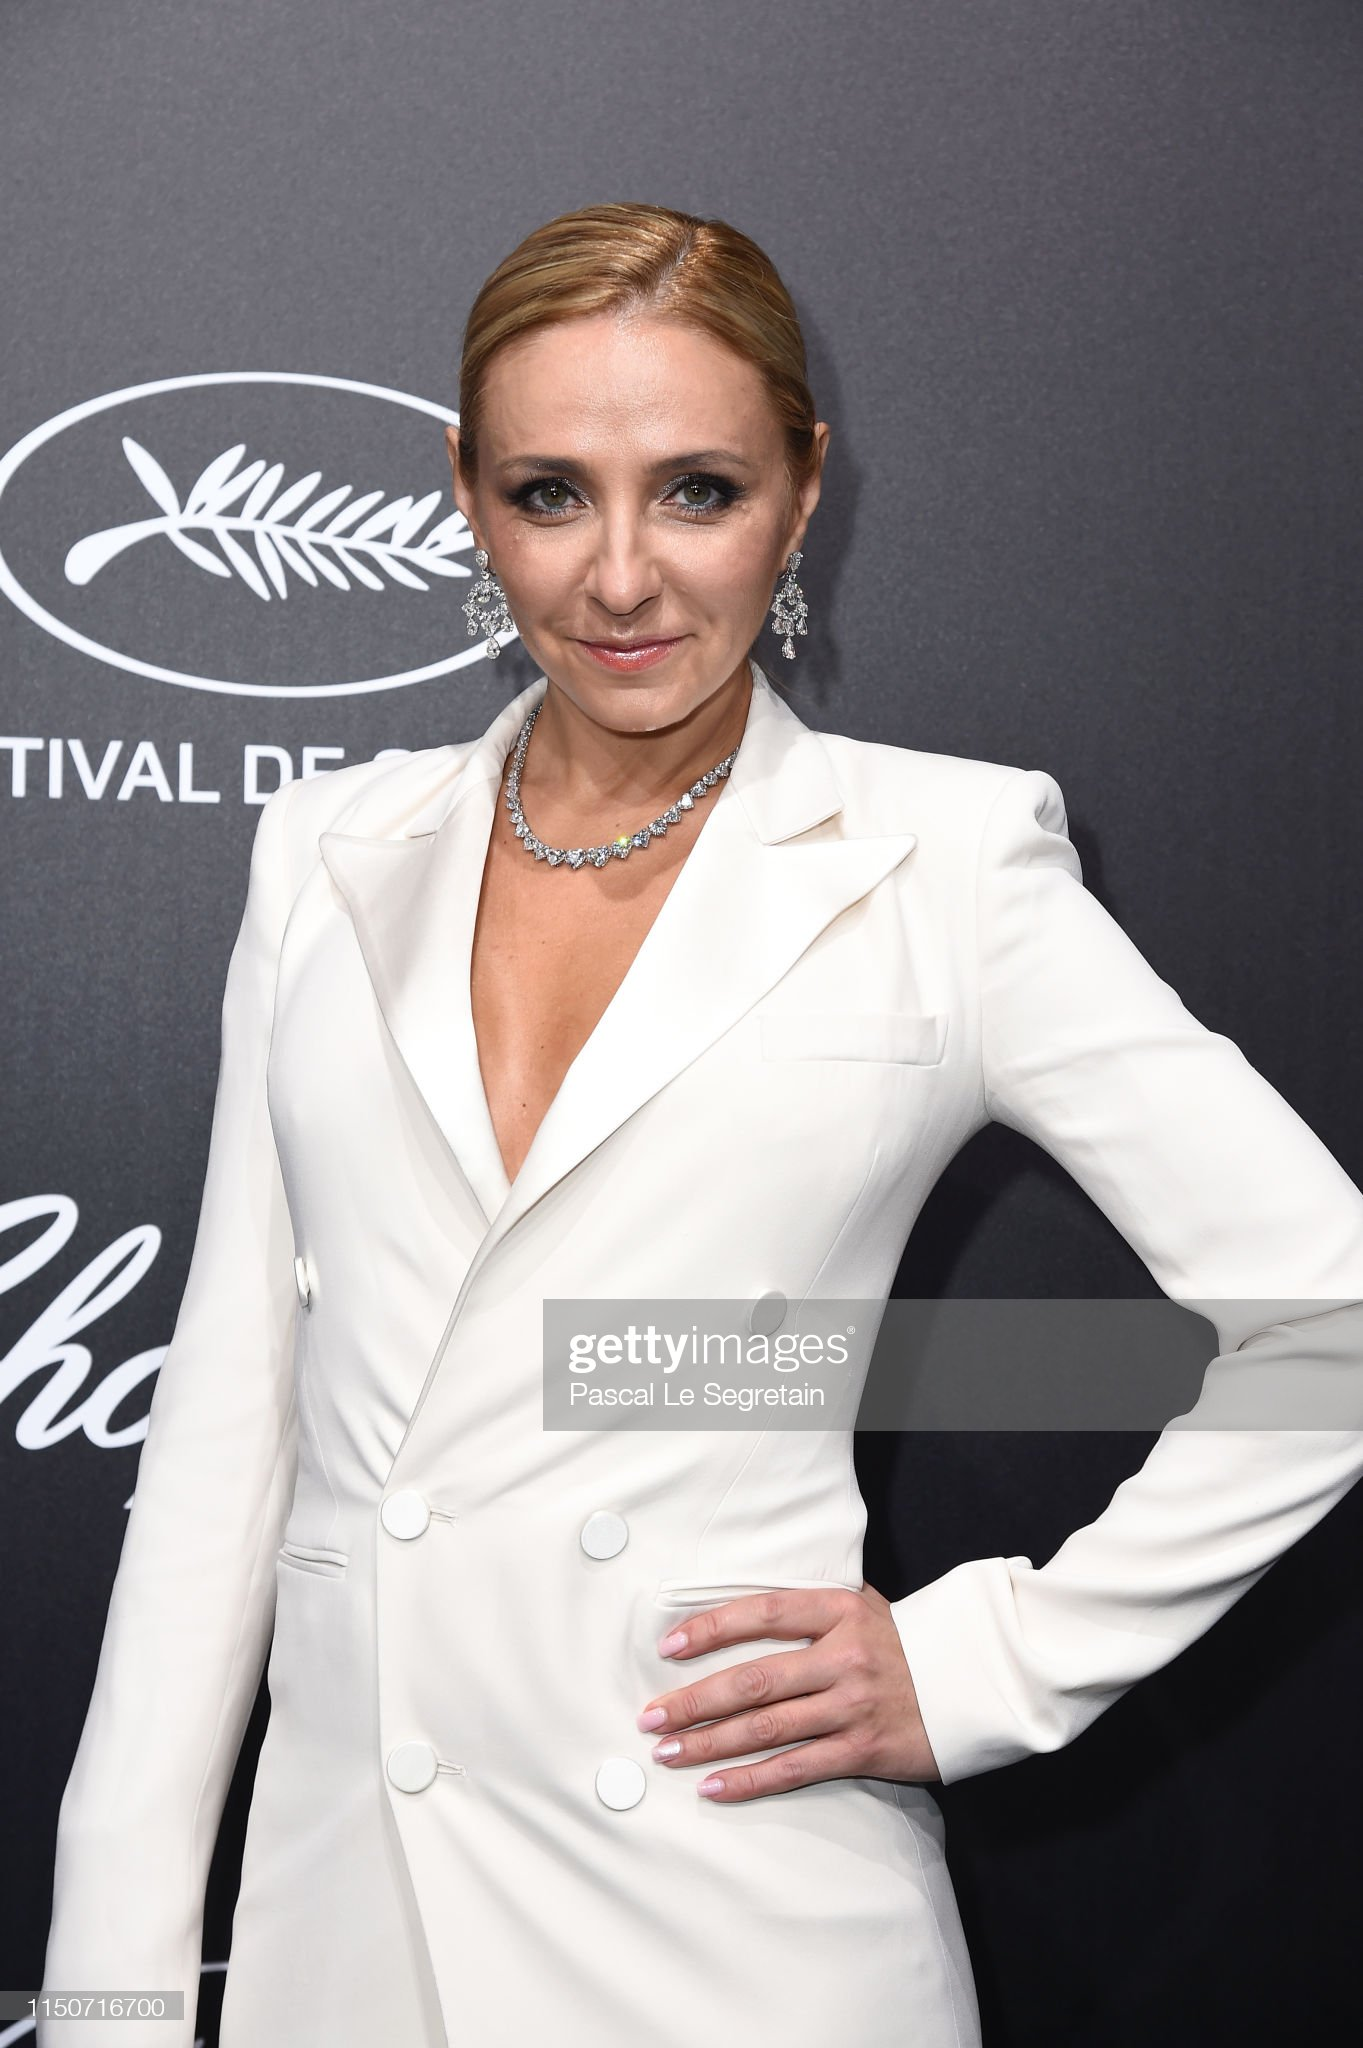 Светская и частная жизнь. 2018, 2019 год - Страница 13 Tatiana-navka-attends-the-official-trophee-chopard-dinner-photocall-picture-id1150716700?s=2048x2048